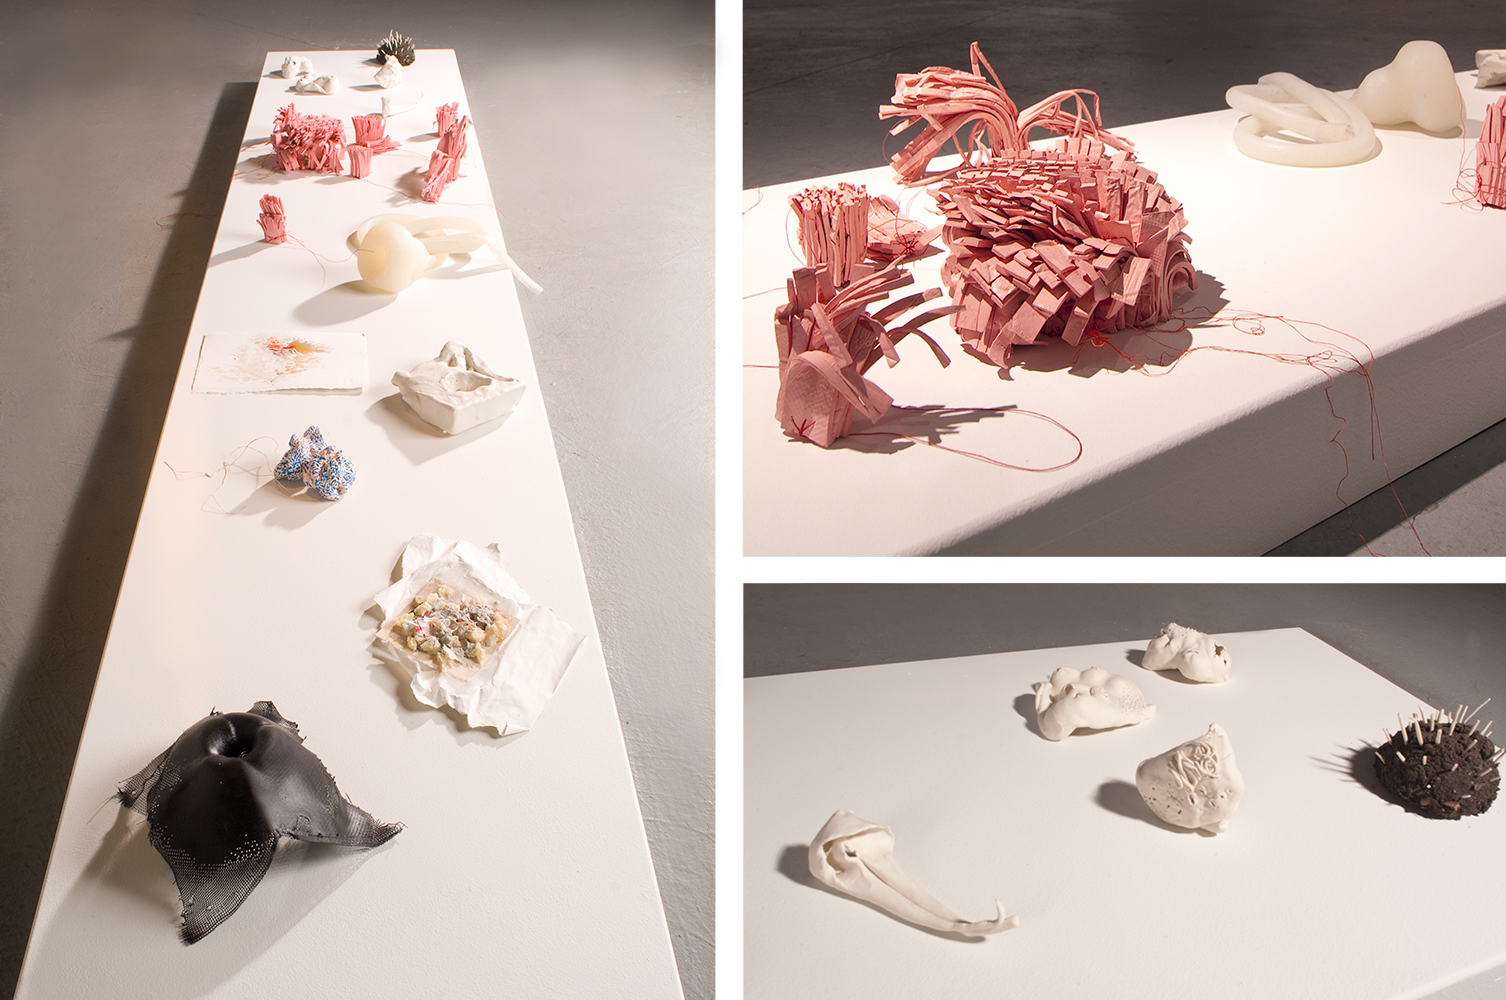 installation, specimens